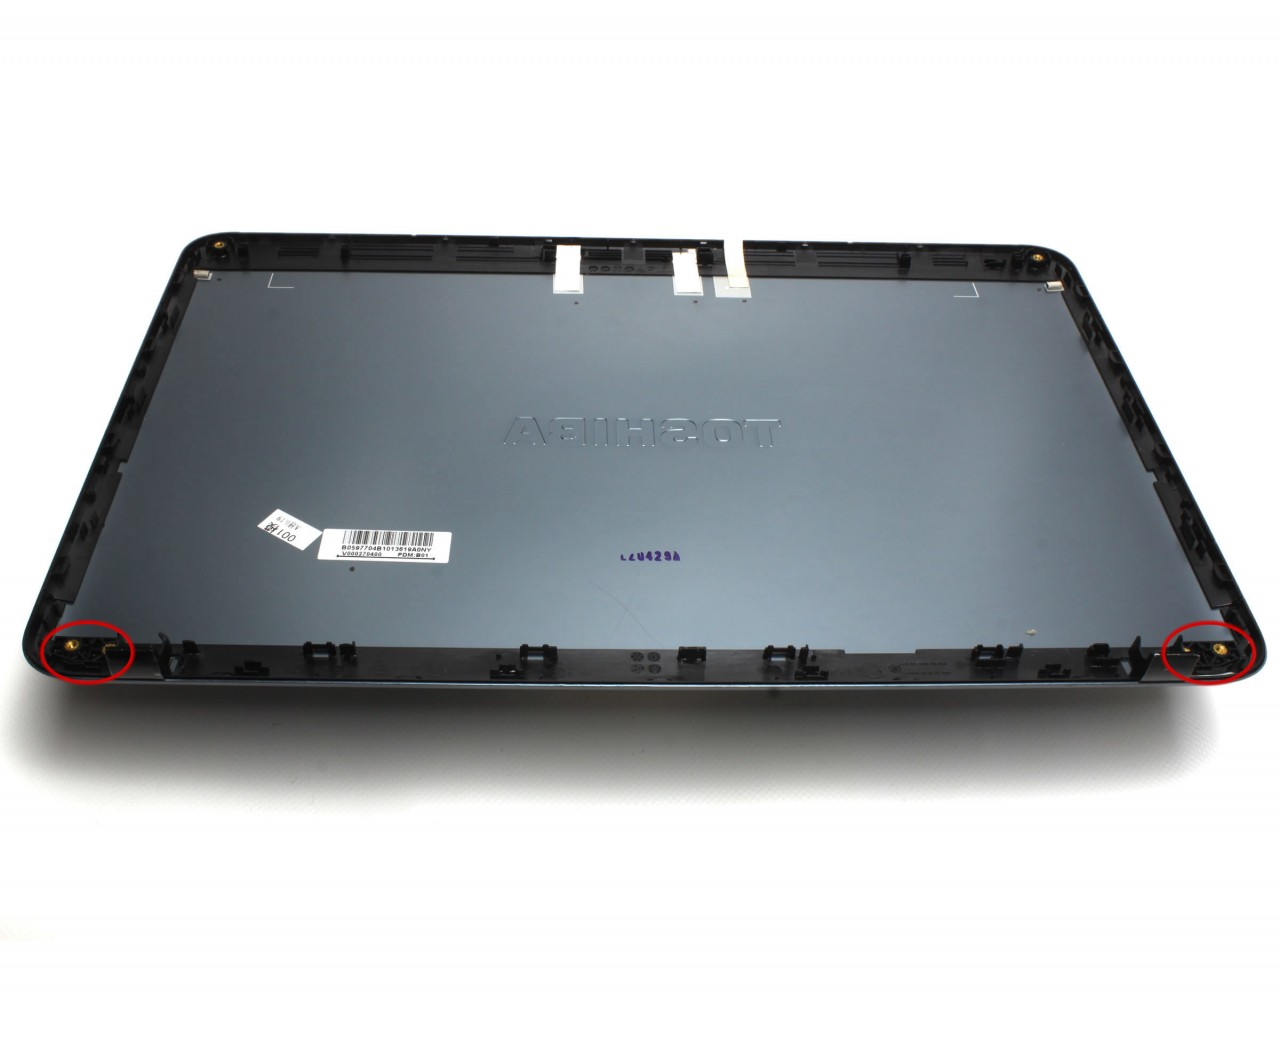 Capac Display BackCover Toshiba Satellite S850 Carcasa Display Gri cu 2 Suruburi Balamale imagine powerlaptop.ro 2021